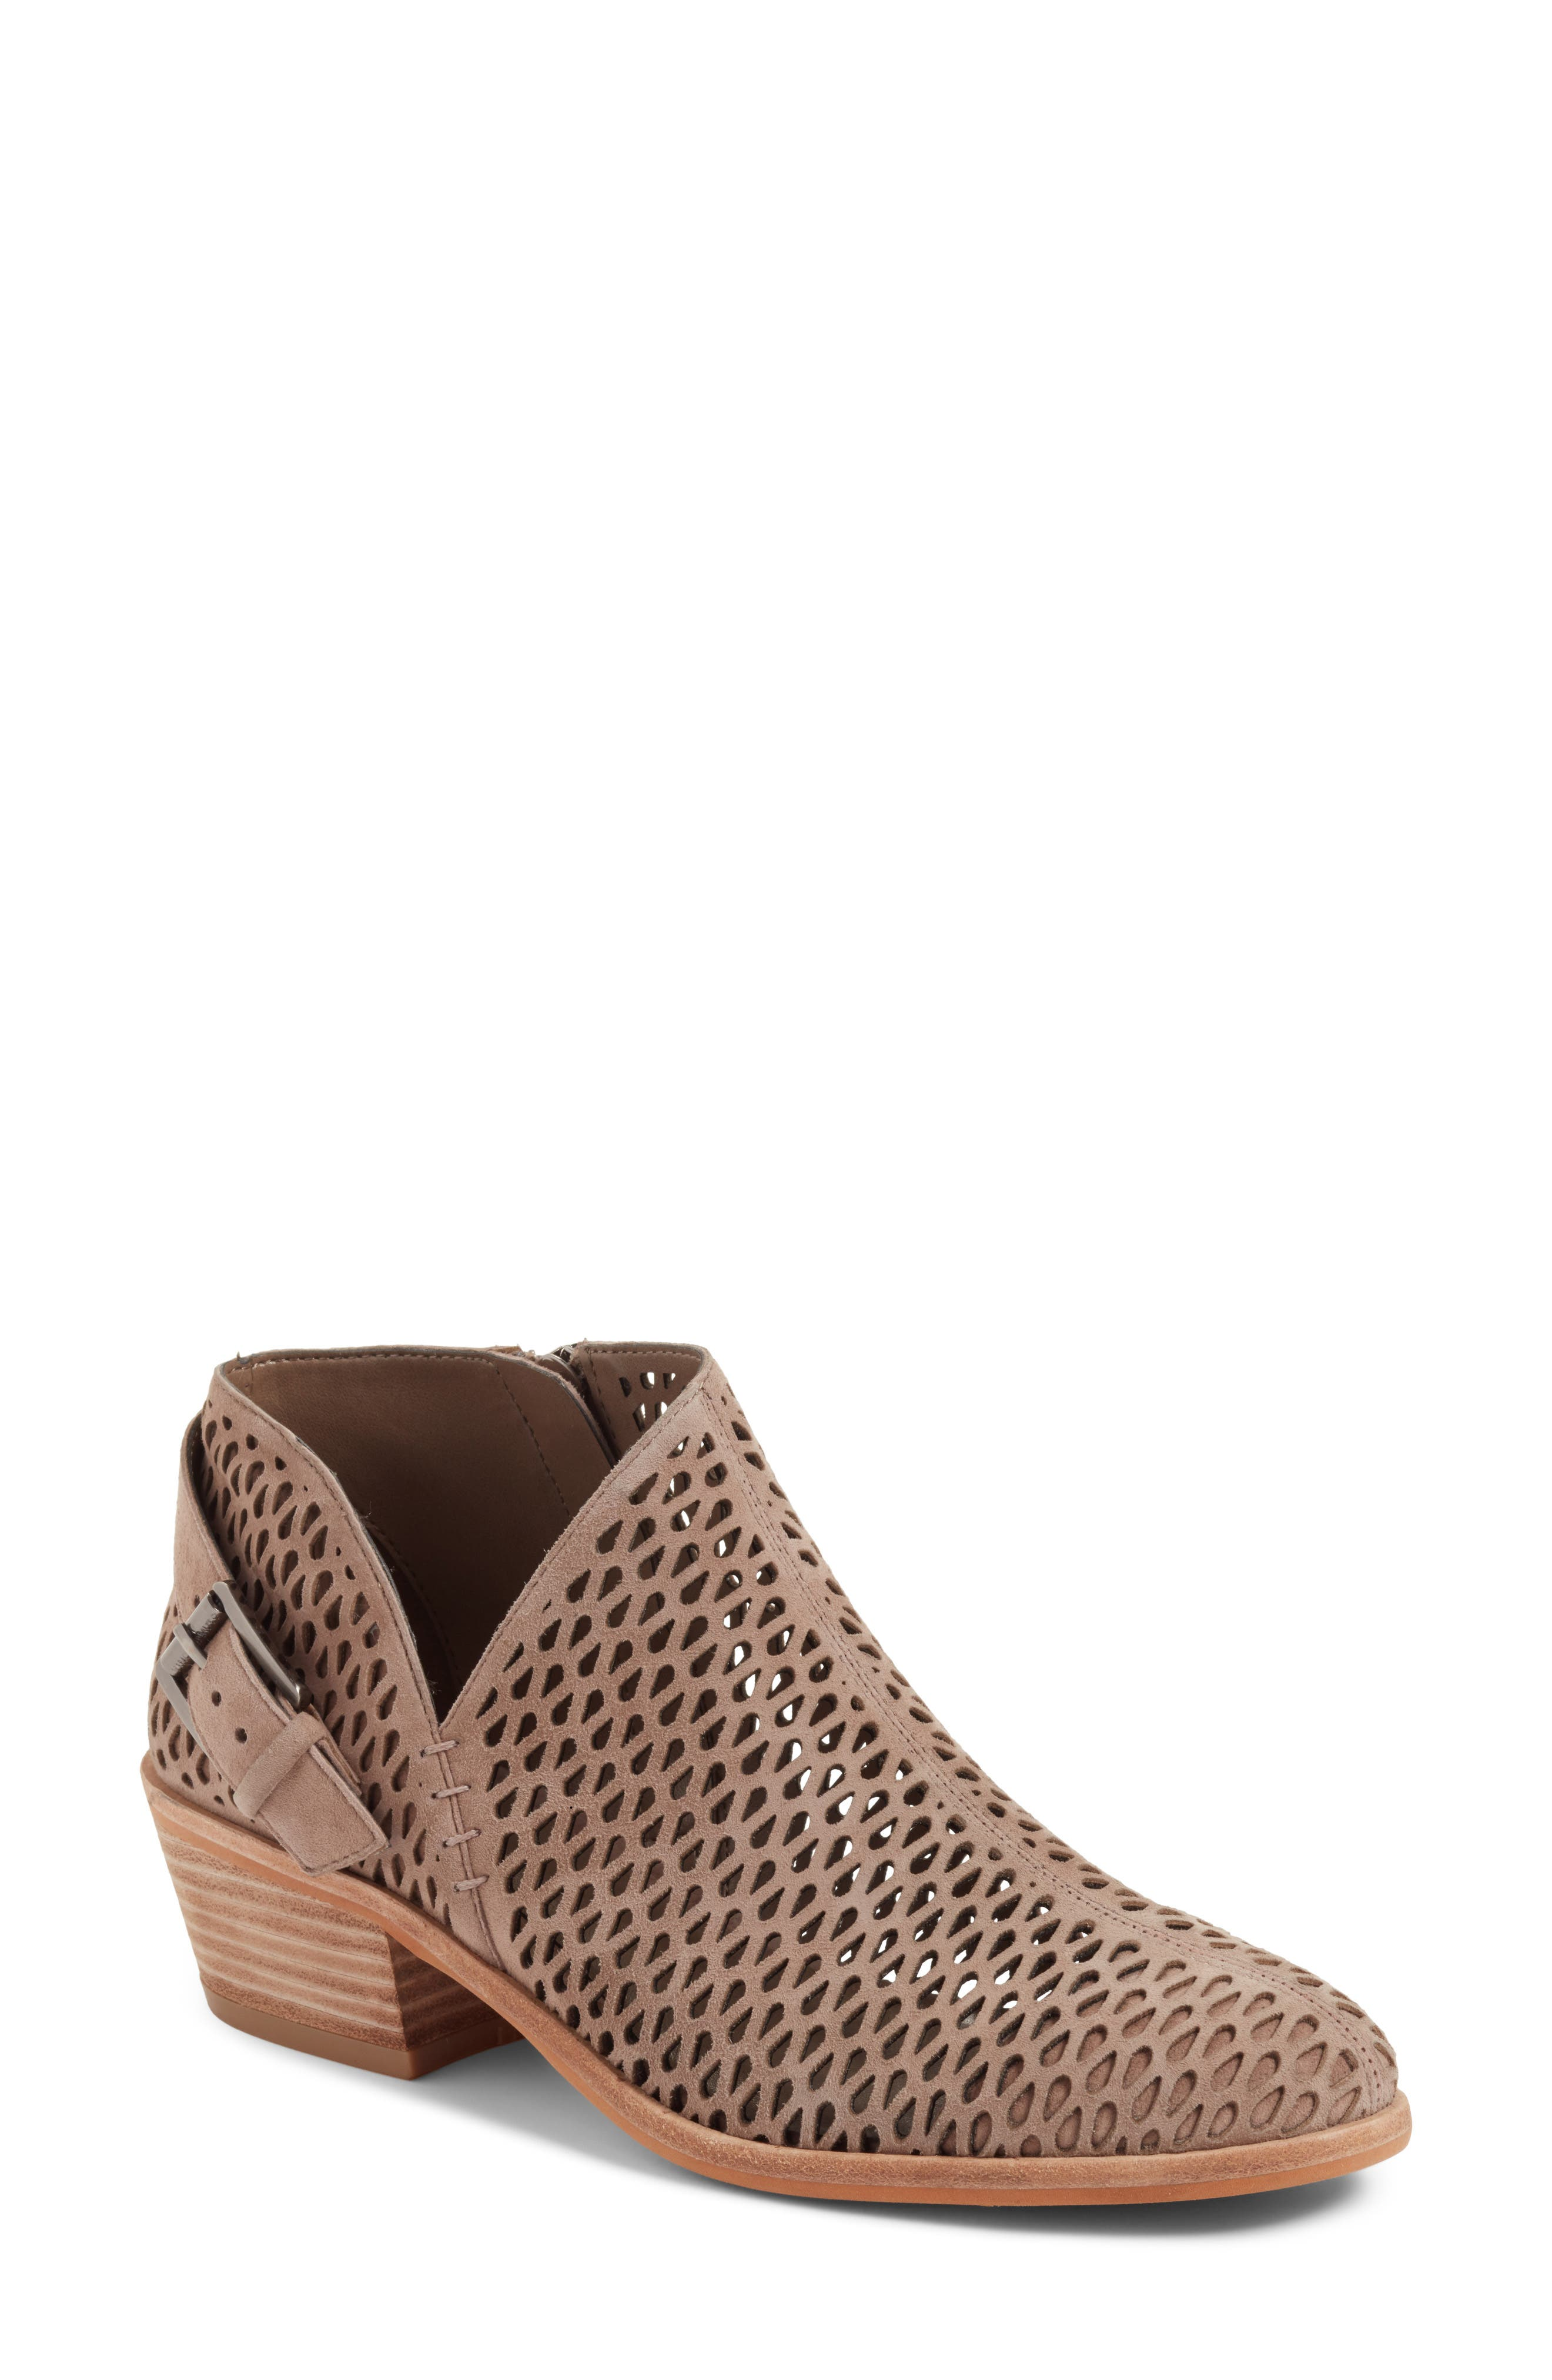 Phandra Bootie,                             Main thumbnail 1, color,                             Urban Lux Suede